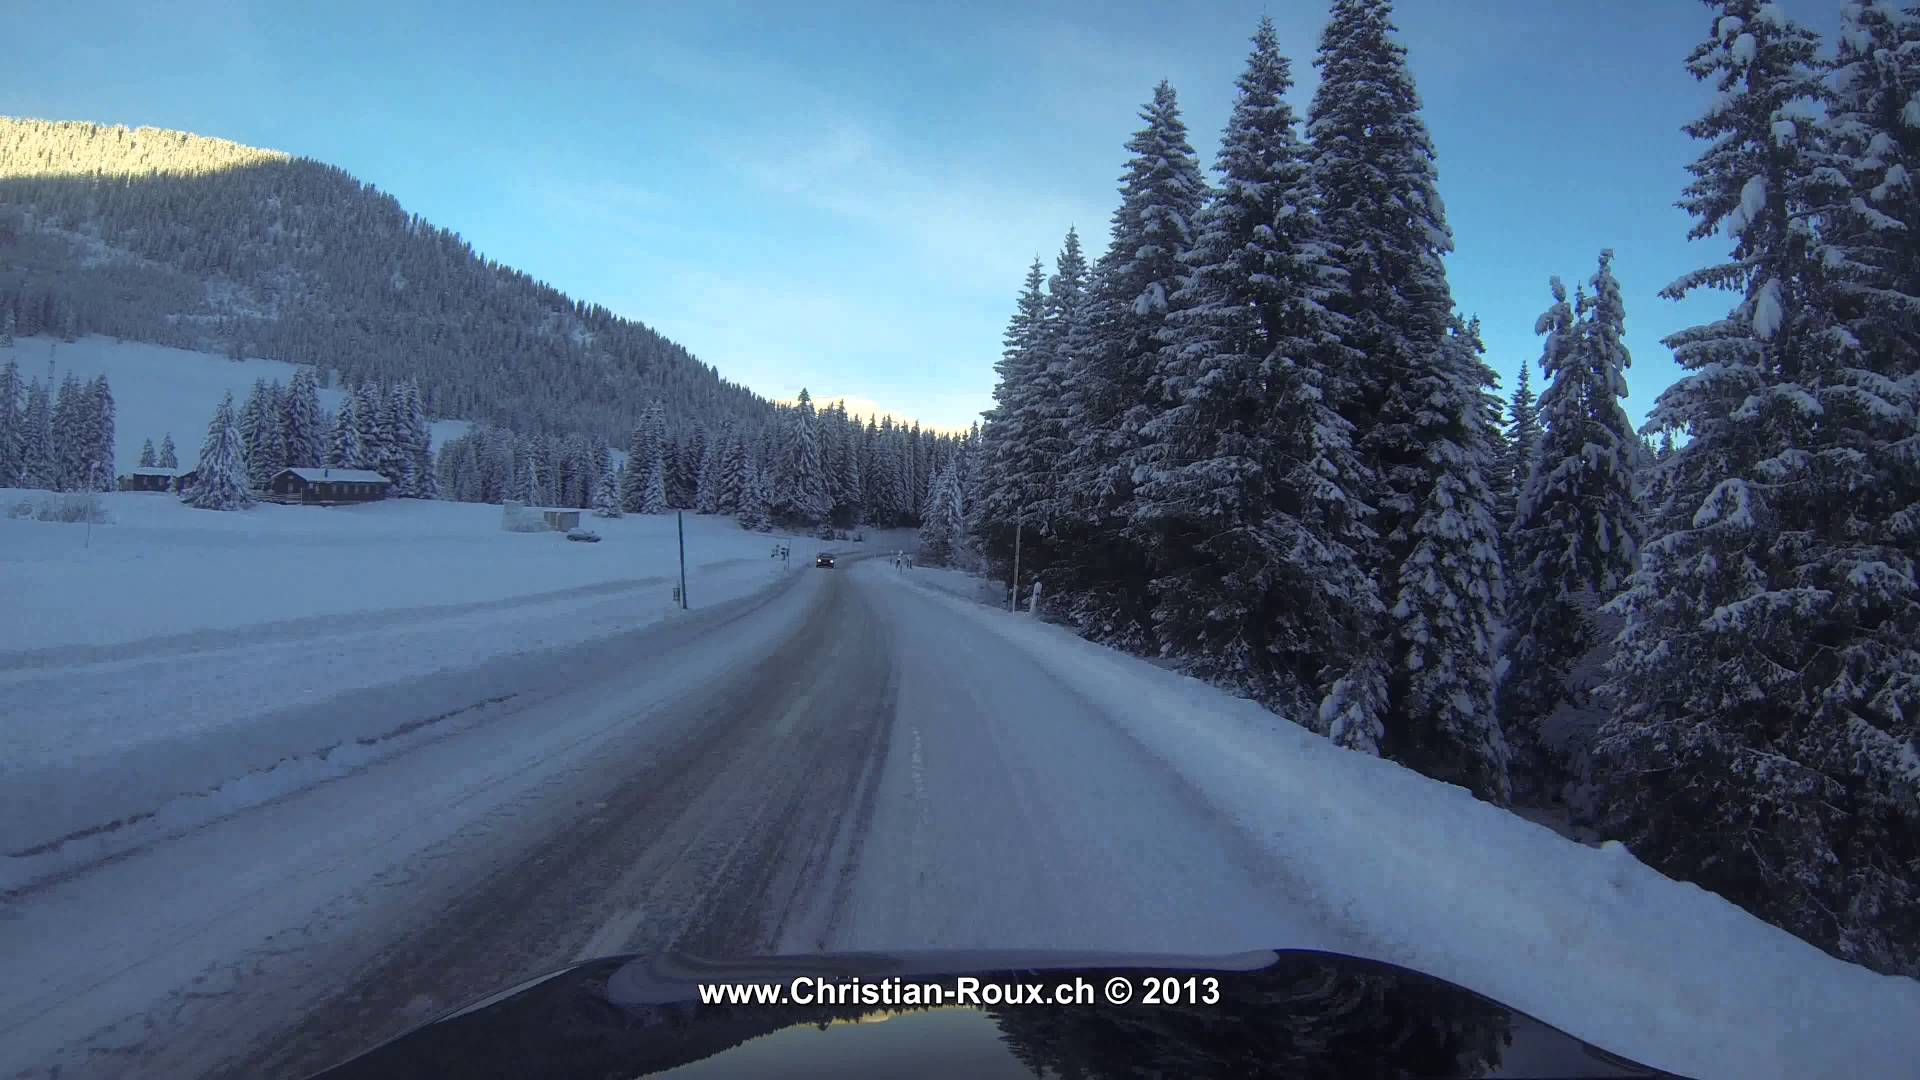 UHD/4K ☼ Switzerland 259 (Camera on board): Col des Mosses in Winter (GoPro Hero3)